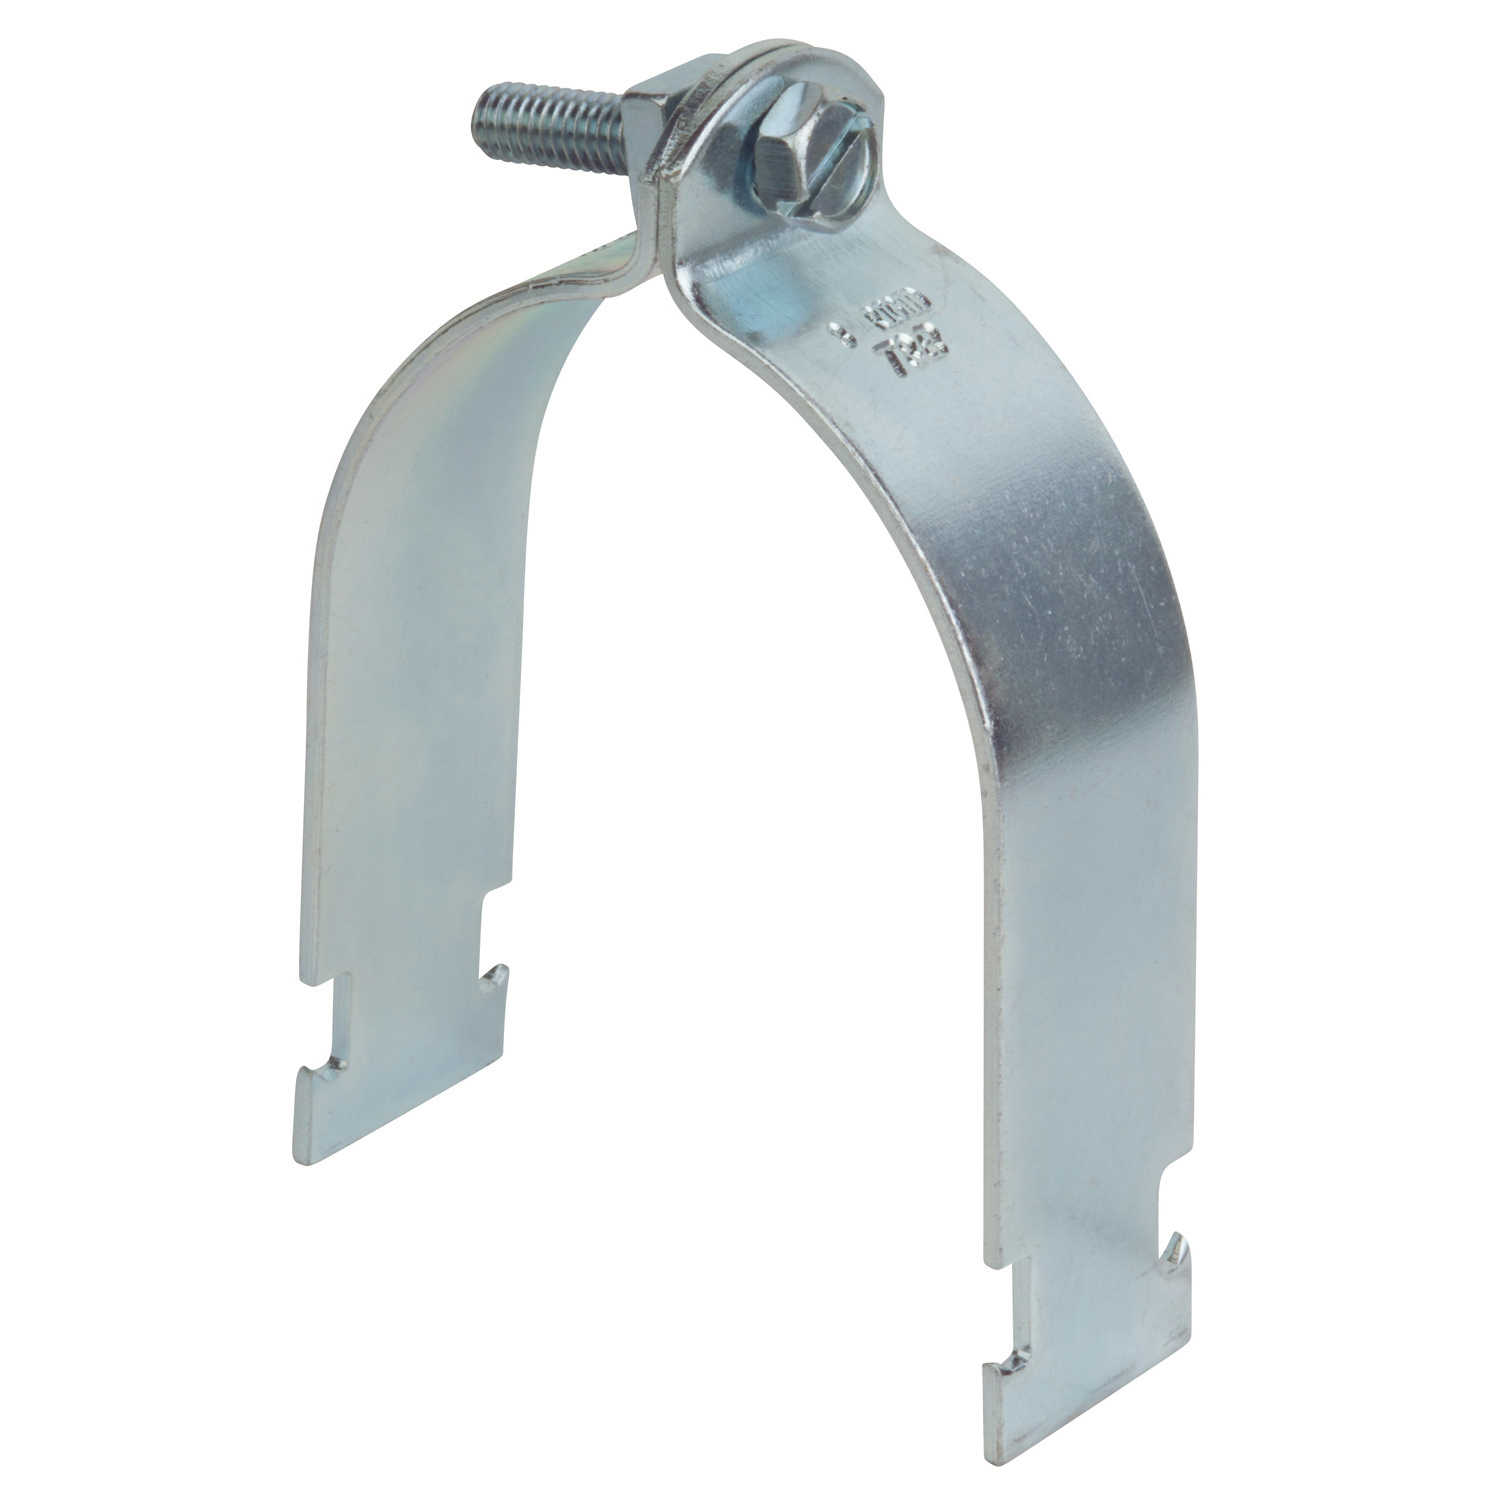 "Superstrut 702-3/4-EG 3/4"" Steel Pipe Strap w/ SilverGalv finish. For use with Rigid/IMC"